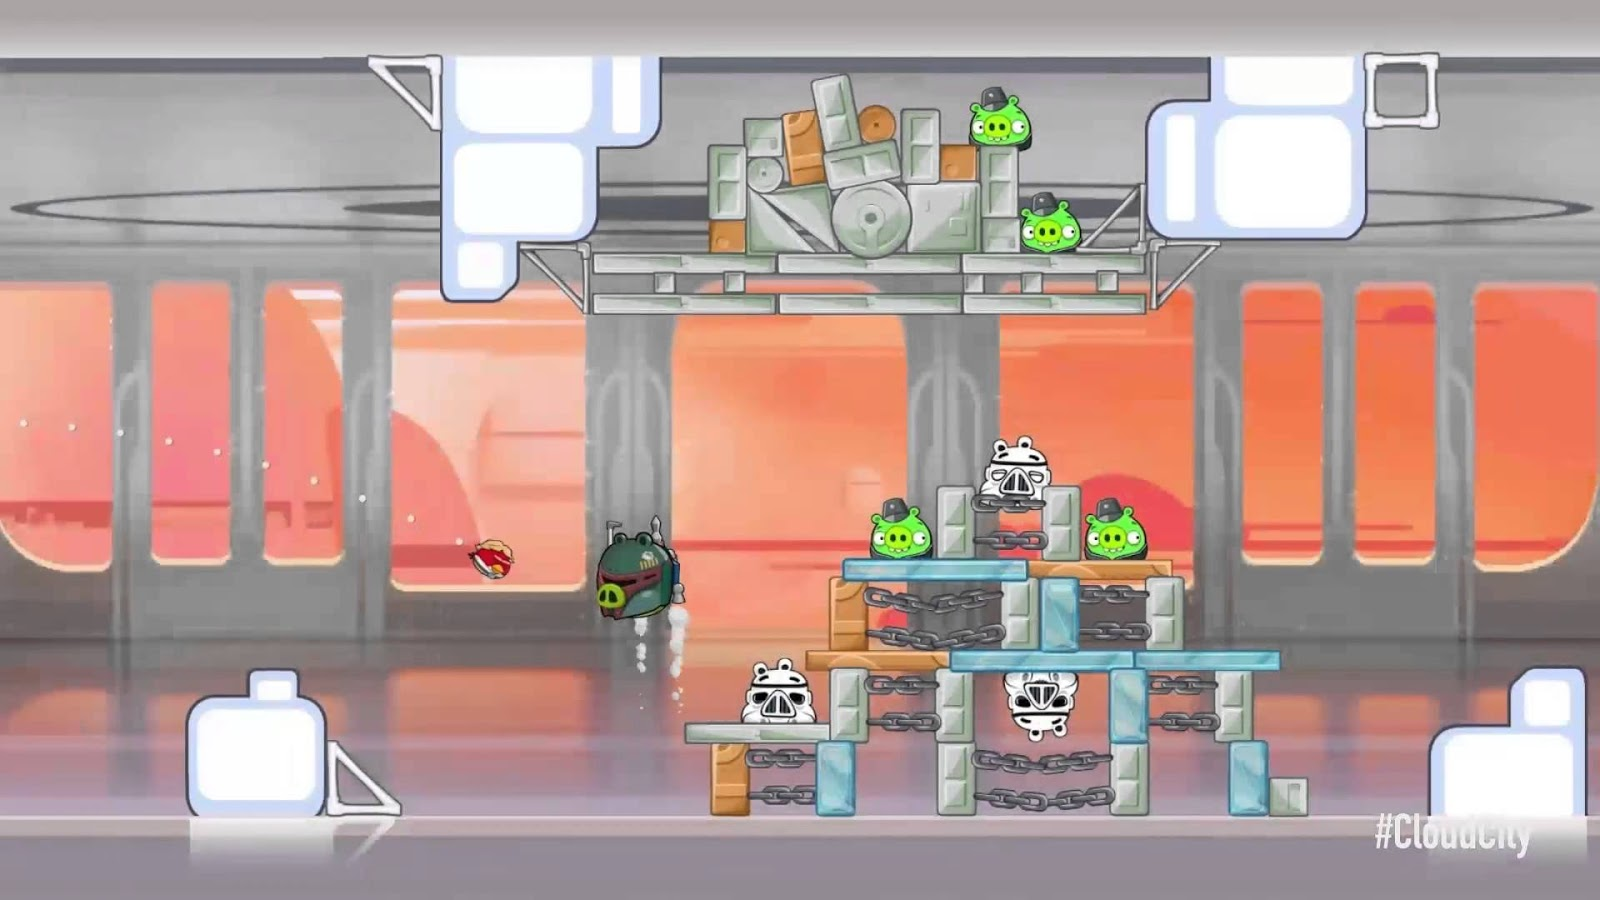 angry birds cloud city gameplay